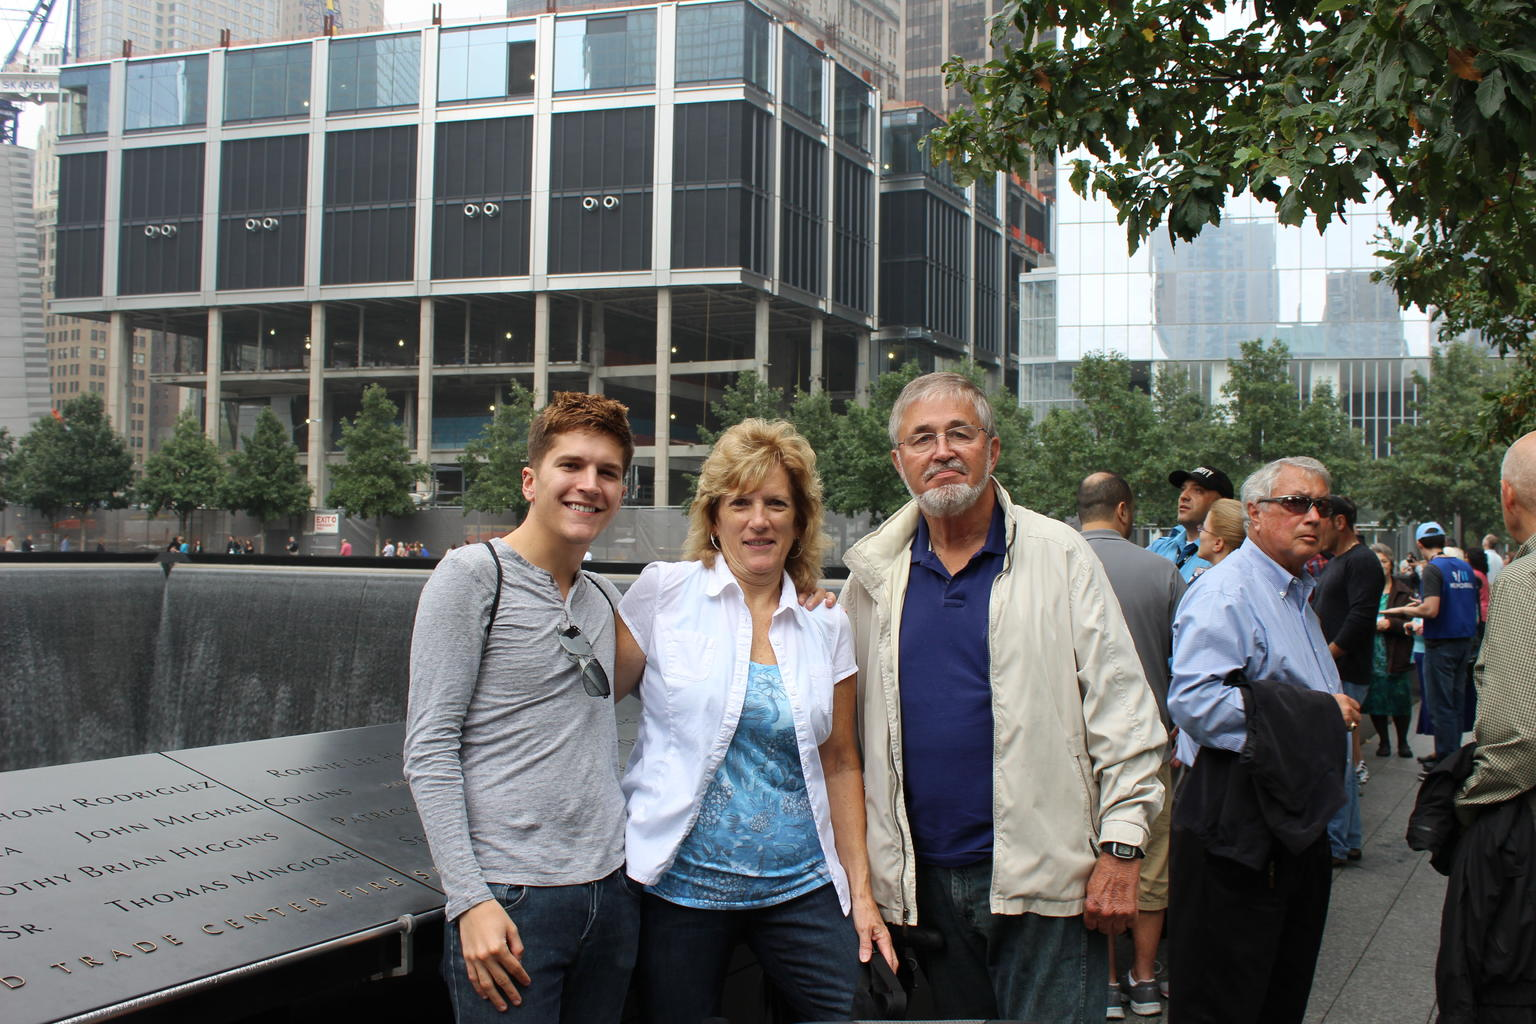 9/11 Memorial and Ground Zero Tour with Optional Skip-Line 9/11 Museum Entry